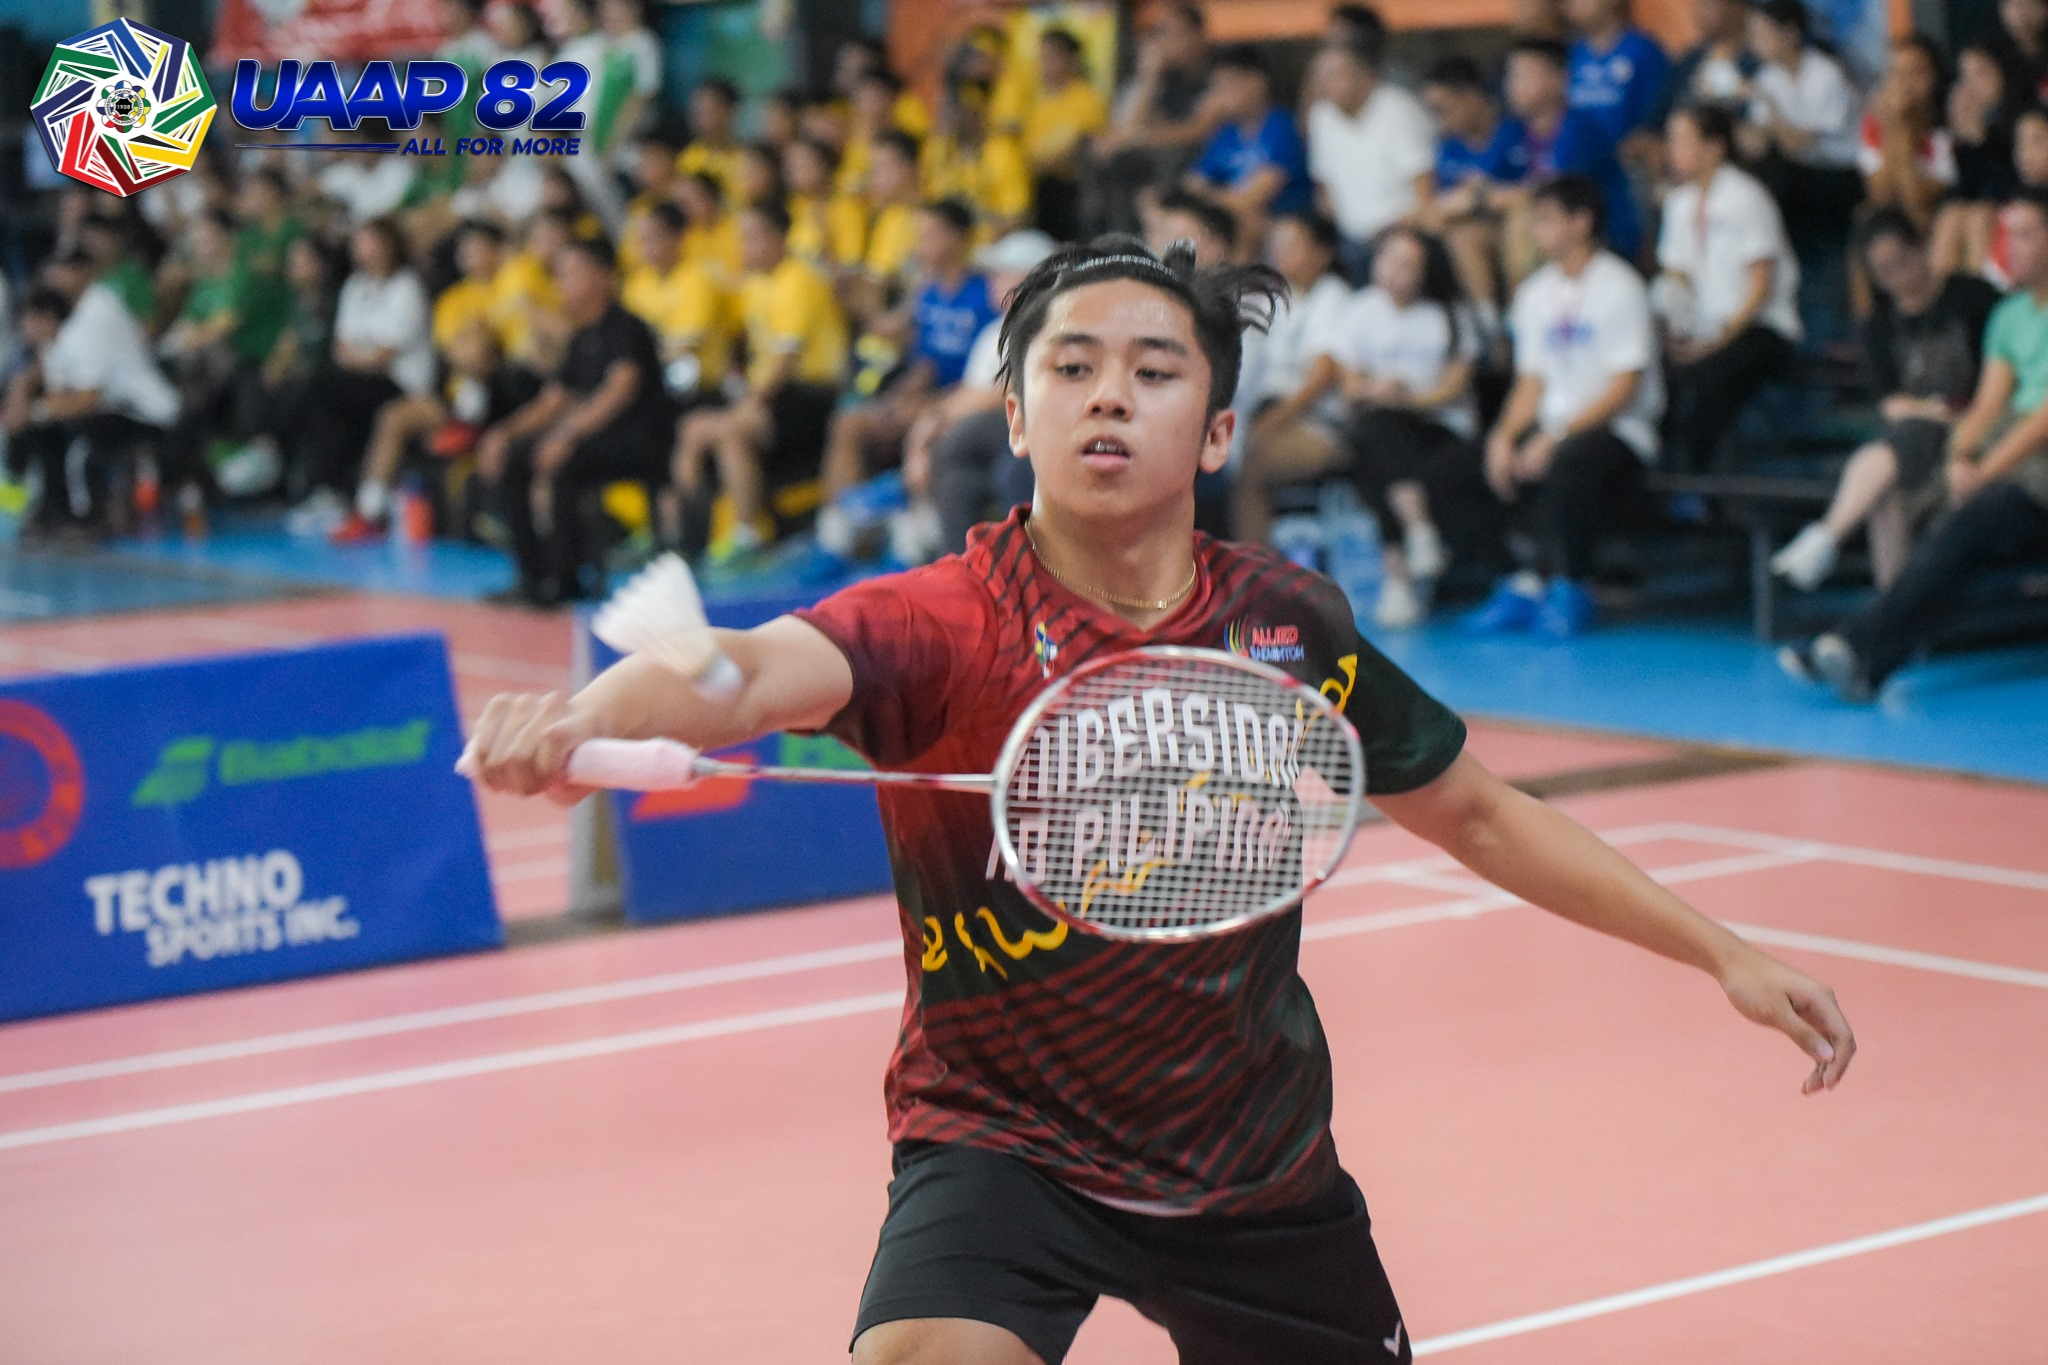 Tiebreaker Times JM Bernardo sparks UP rout of UE to open UAAP Men's Badminton campaign ADMU AdU Badminton DLSU News UAAP UE UP UST  Vinci Manuel UST Men's Badminton UP Men's Badminton UE Men's Badminton UAAP Season 82 Men's Badminton UAAP Season 82 Michael Clemente Kim Ga-an Keoni Asuncion JM Bernardo Jason Vanzuela Jan Mangubat Jacinto Maliwat Harvey Tungul Hanz Bernardo DLSU Men's Badminton Bryan Bernardo Ateneo Men's Badminton Andrew Pineda Adamson Men's Badminton